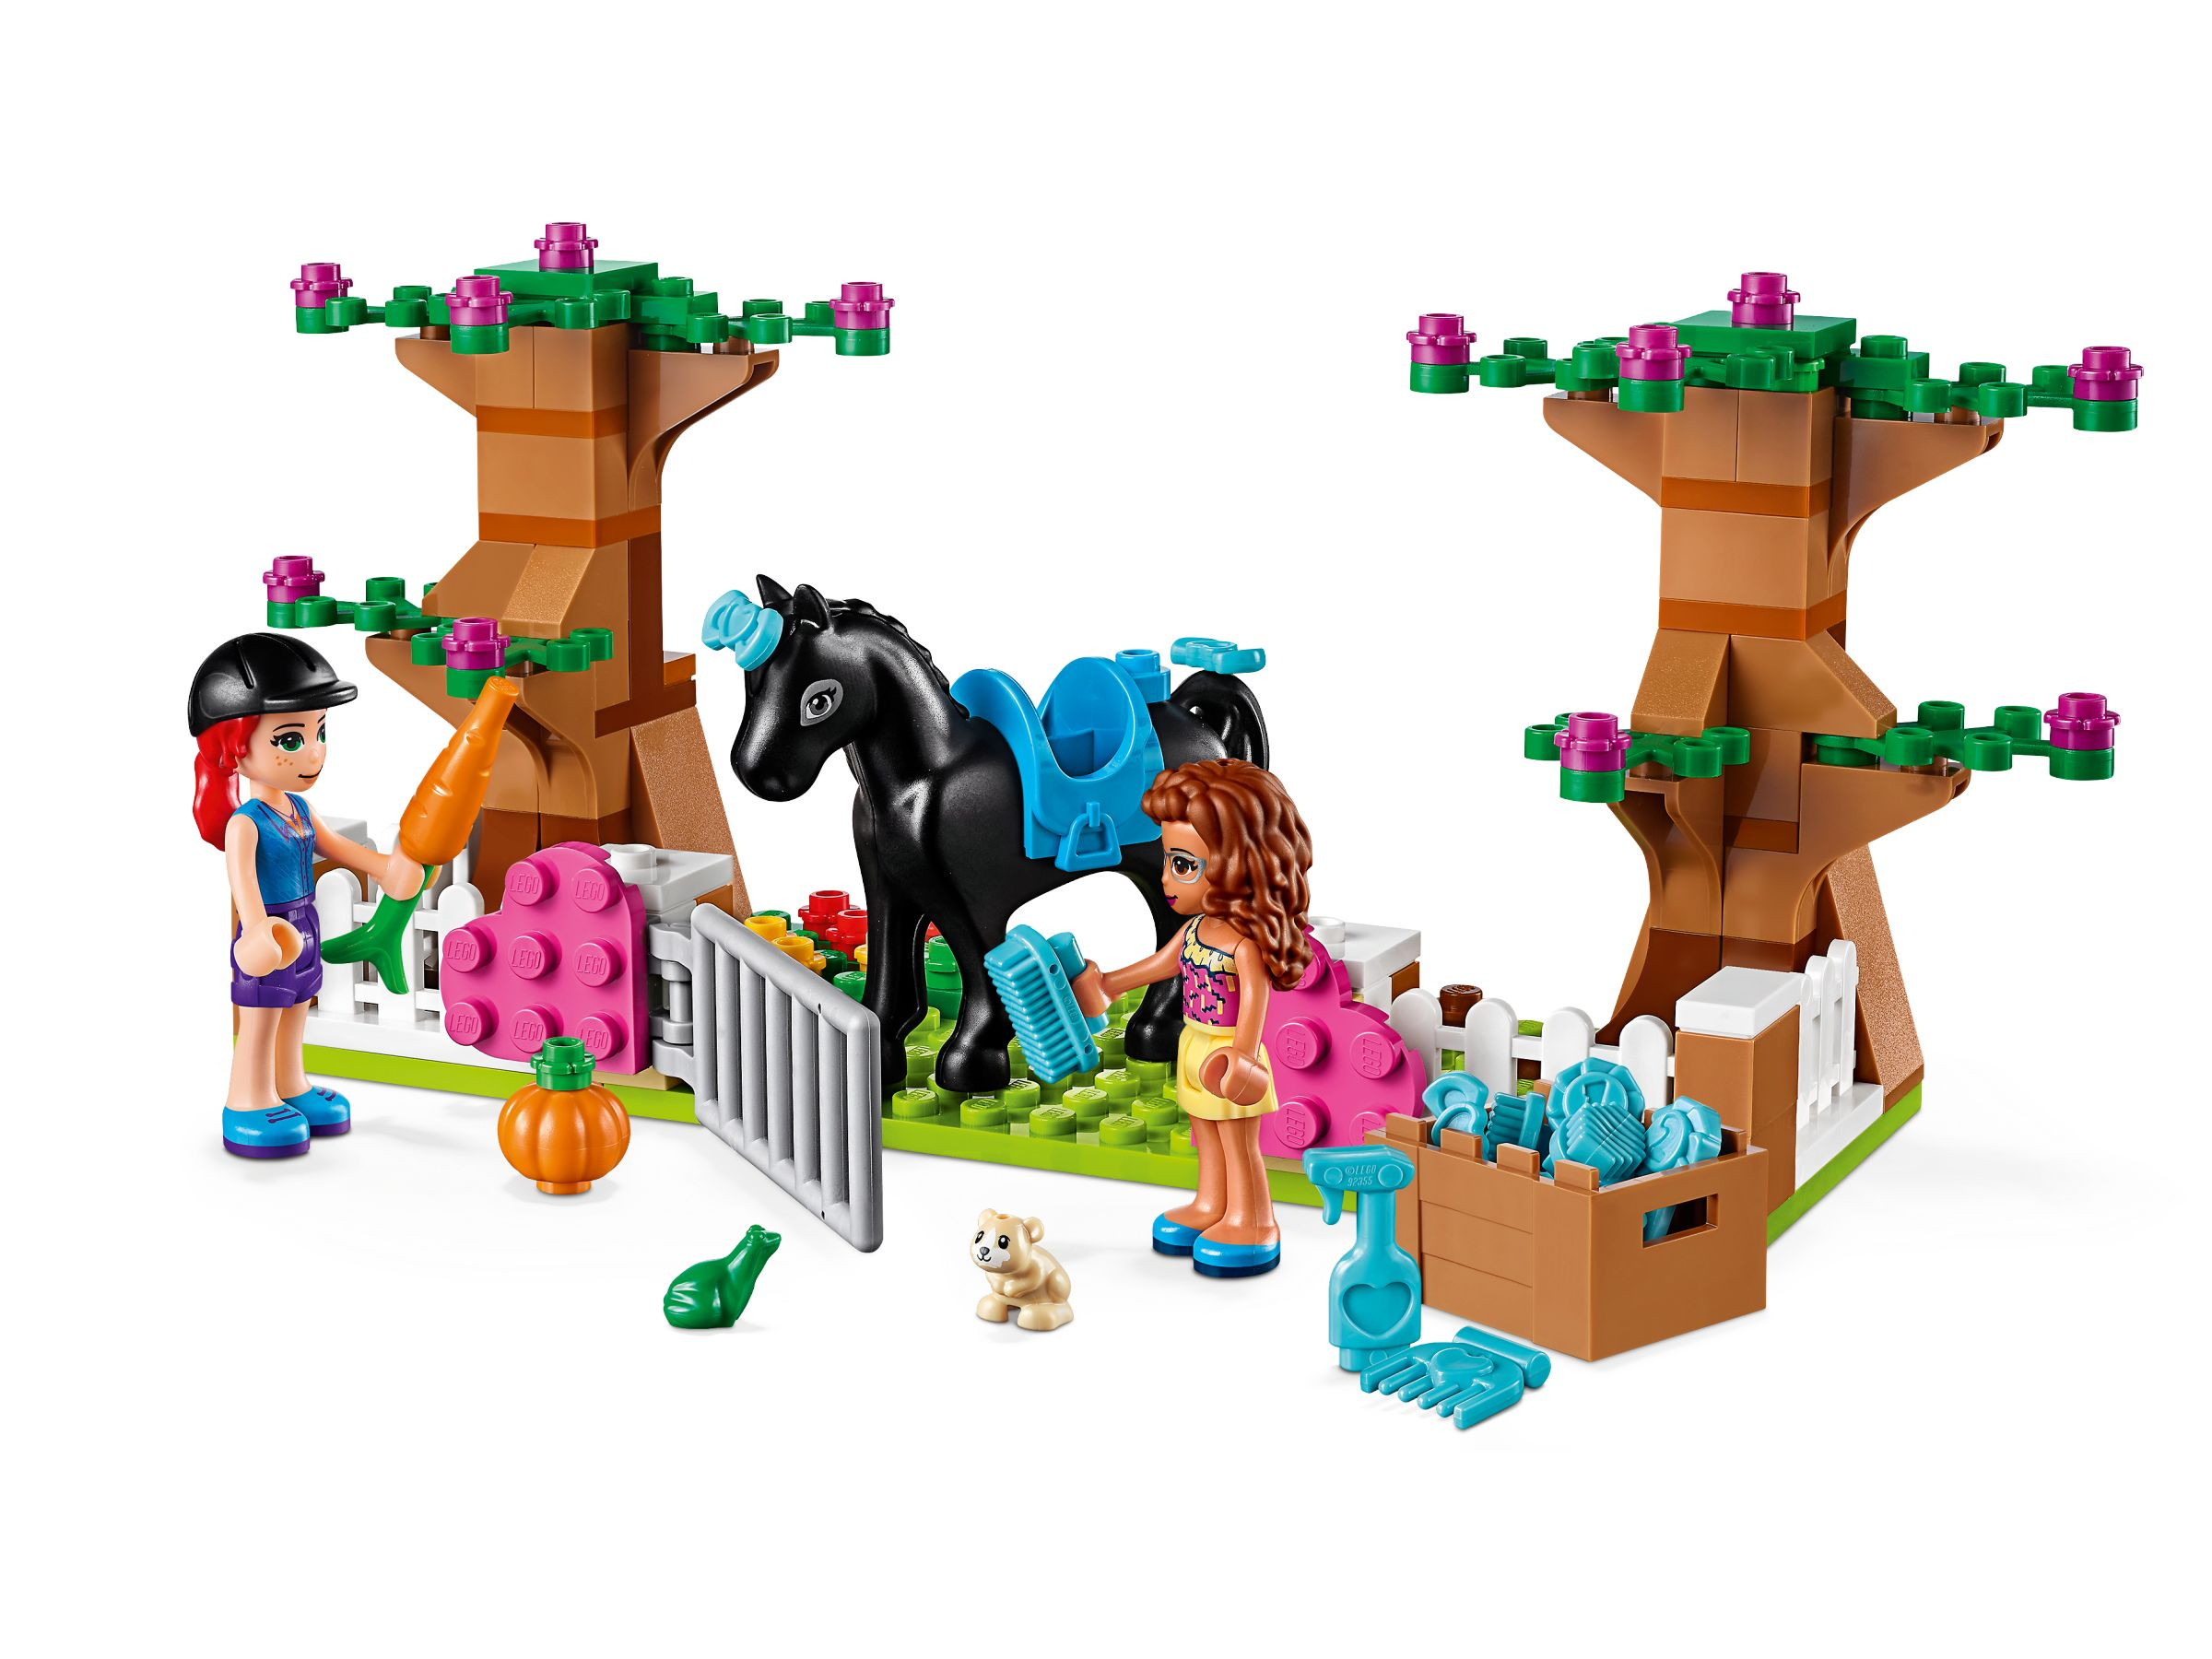 LEGO Friends 41431 Heartlake City Steinebox LEGO_41431_alt2.jpg